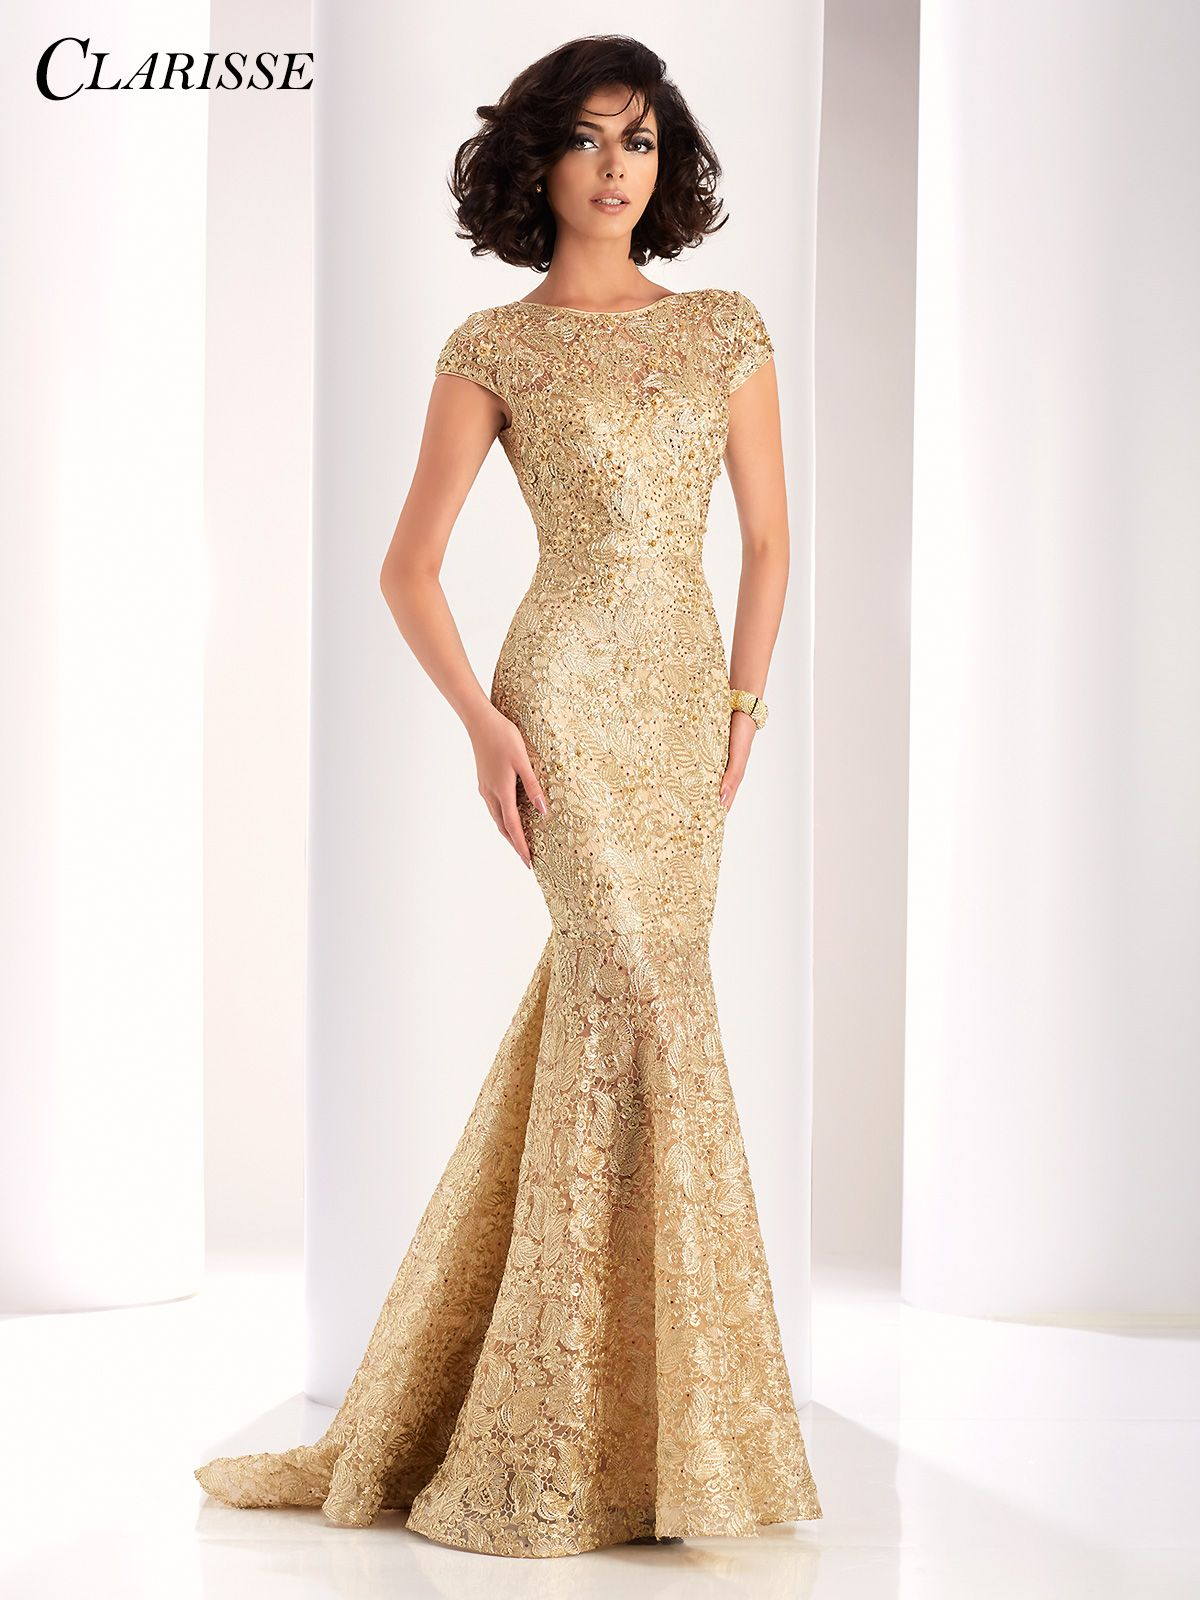 Clarisse Gold Lace Mermaid Evening Gown 4852 6048801e38da